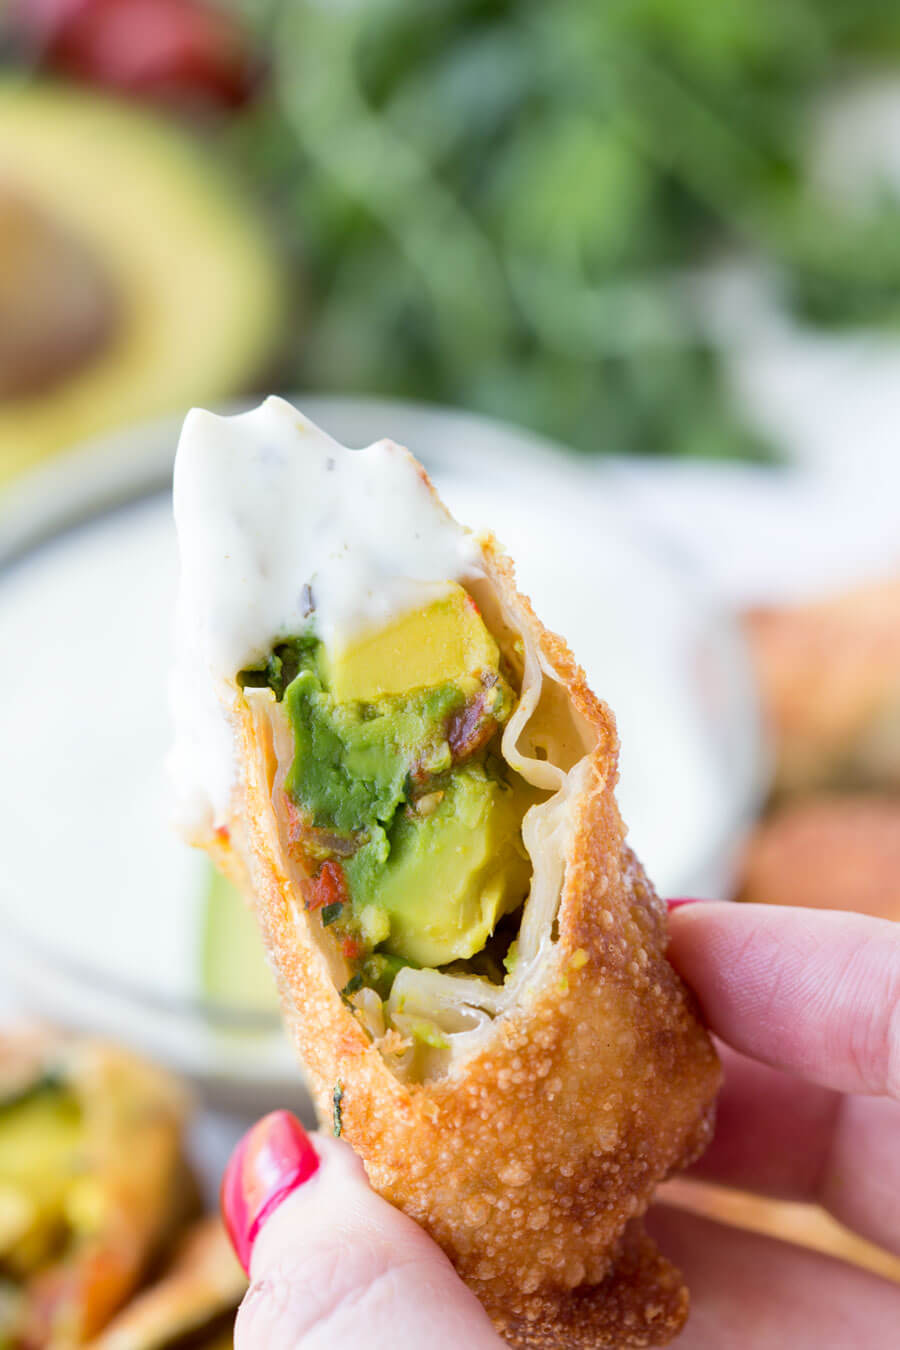 Avocado Eggrolls: Crunchy egg roll wrapper filled with chunks of California Avocados, cilantro, tomatoes, red onion, and roasted red peppers; dipped in a creamy avocado ranch dipping sauce!